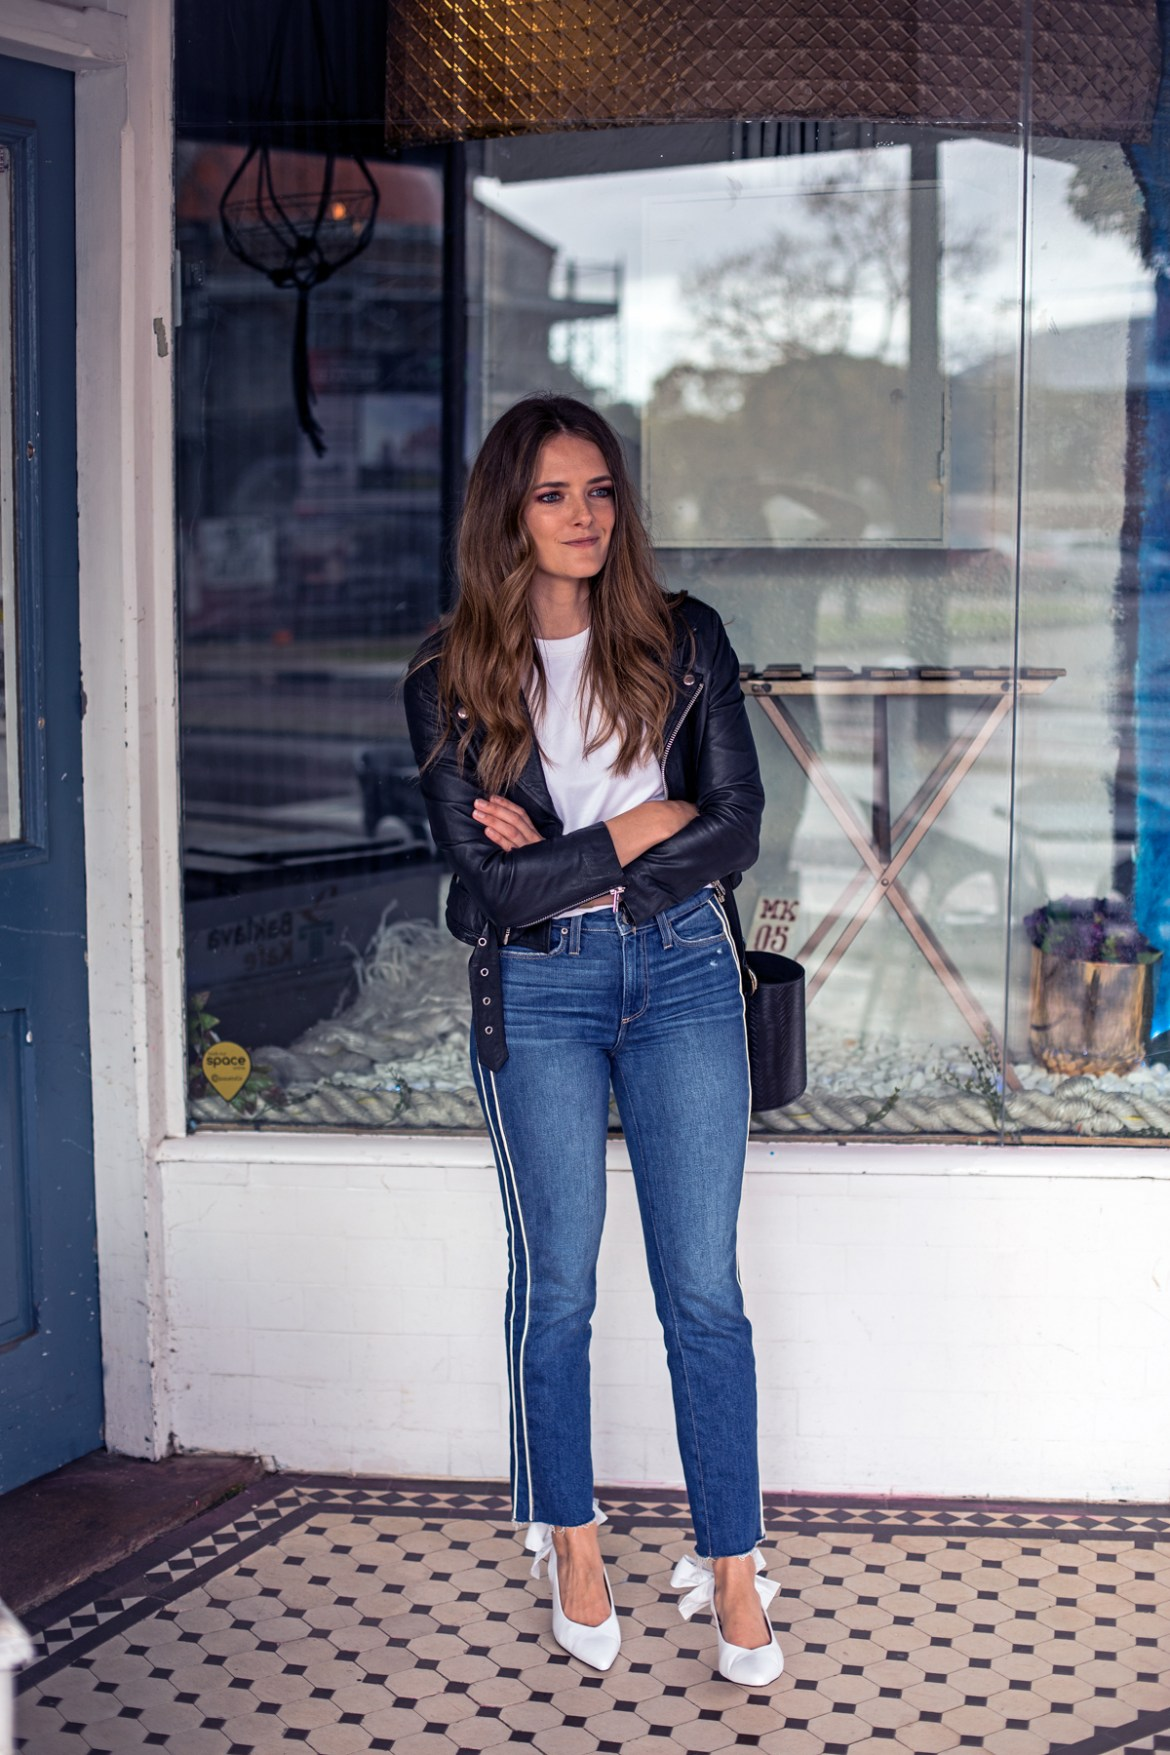 Jenelle Witty from Inspiring Wit blog in Paige jeans, Jac + Jack white basic t-shirt and leather jacket with Ganni white bow heels